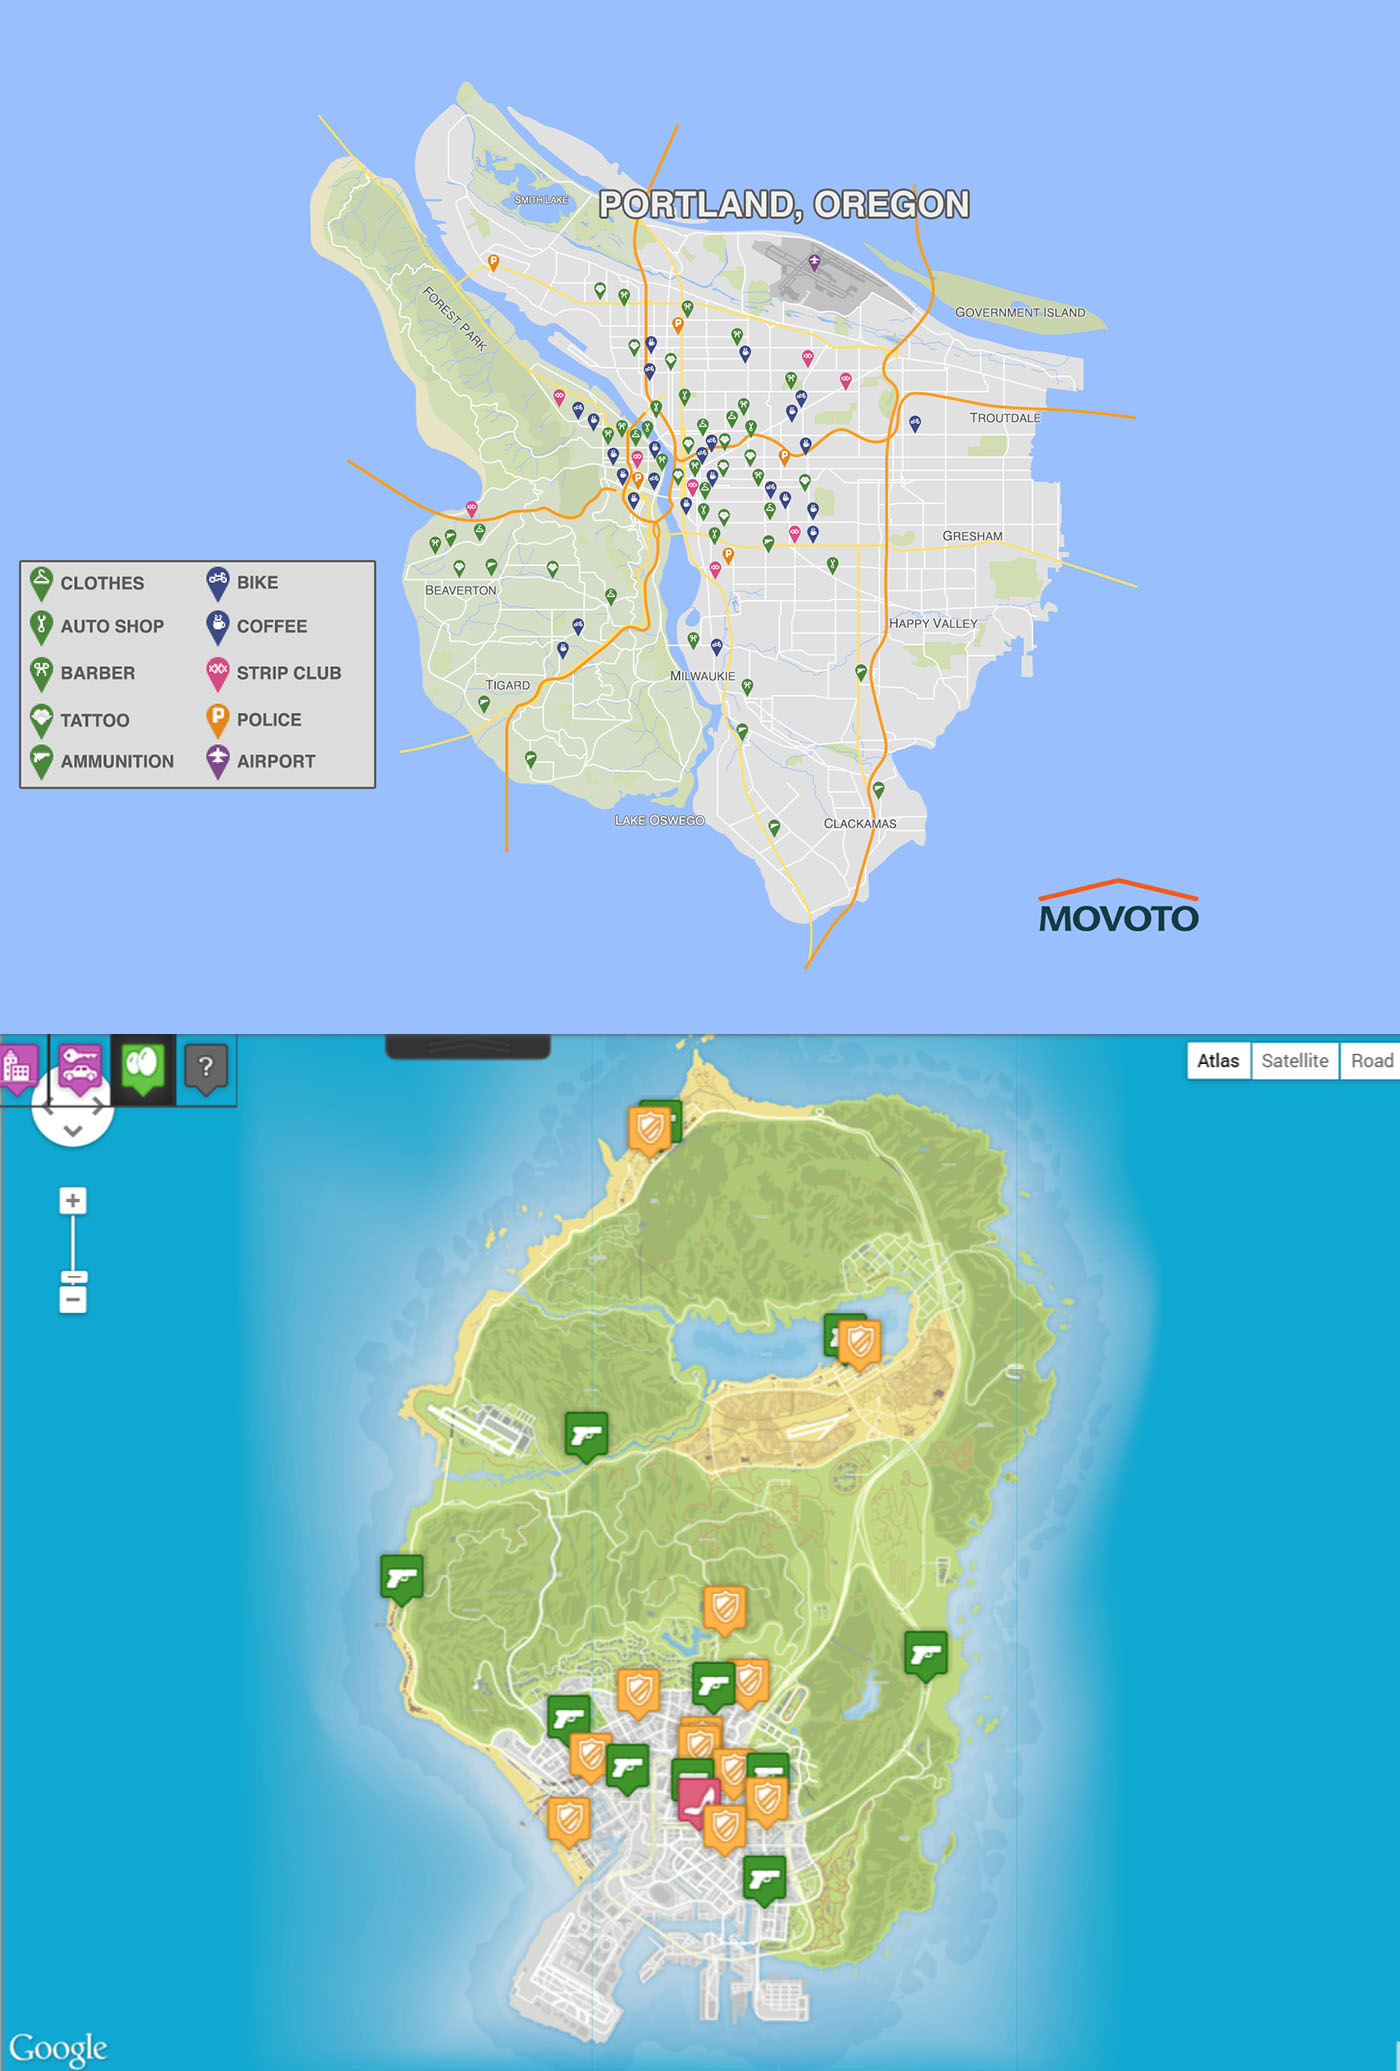 Gta 6 World Map.Grand Theft Auto Vi Should Be In Portland Argues These Real Estate